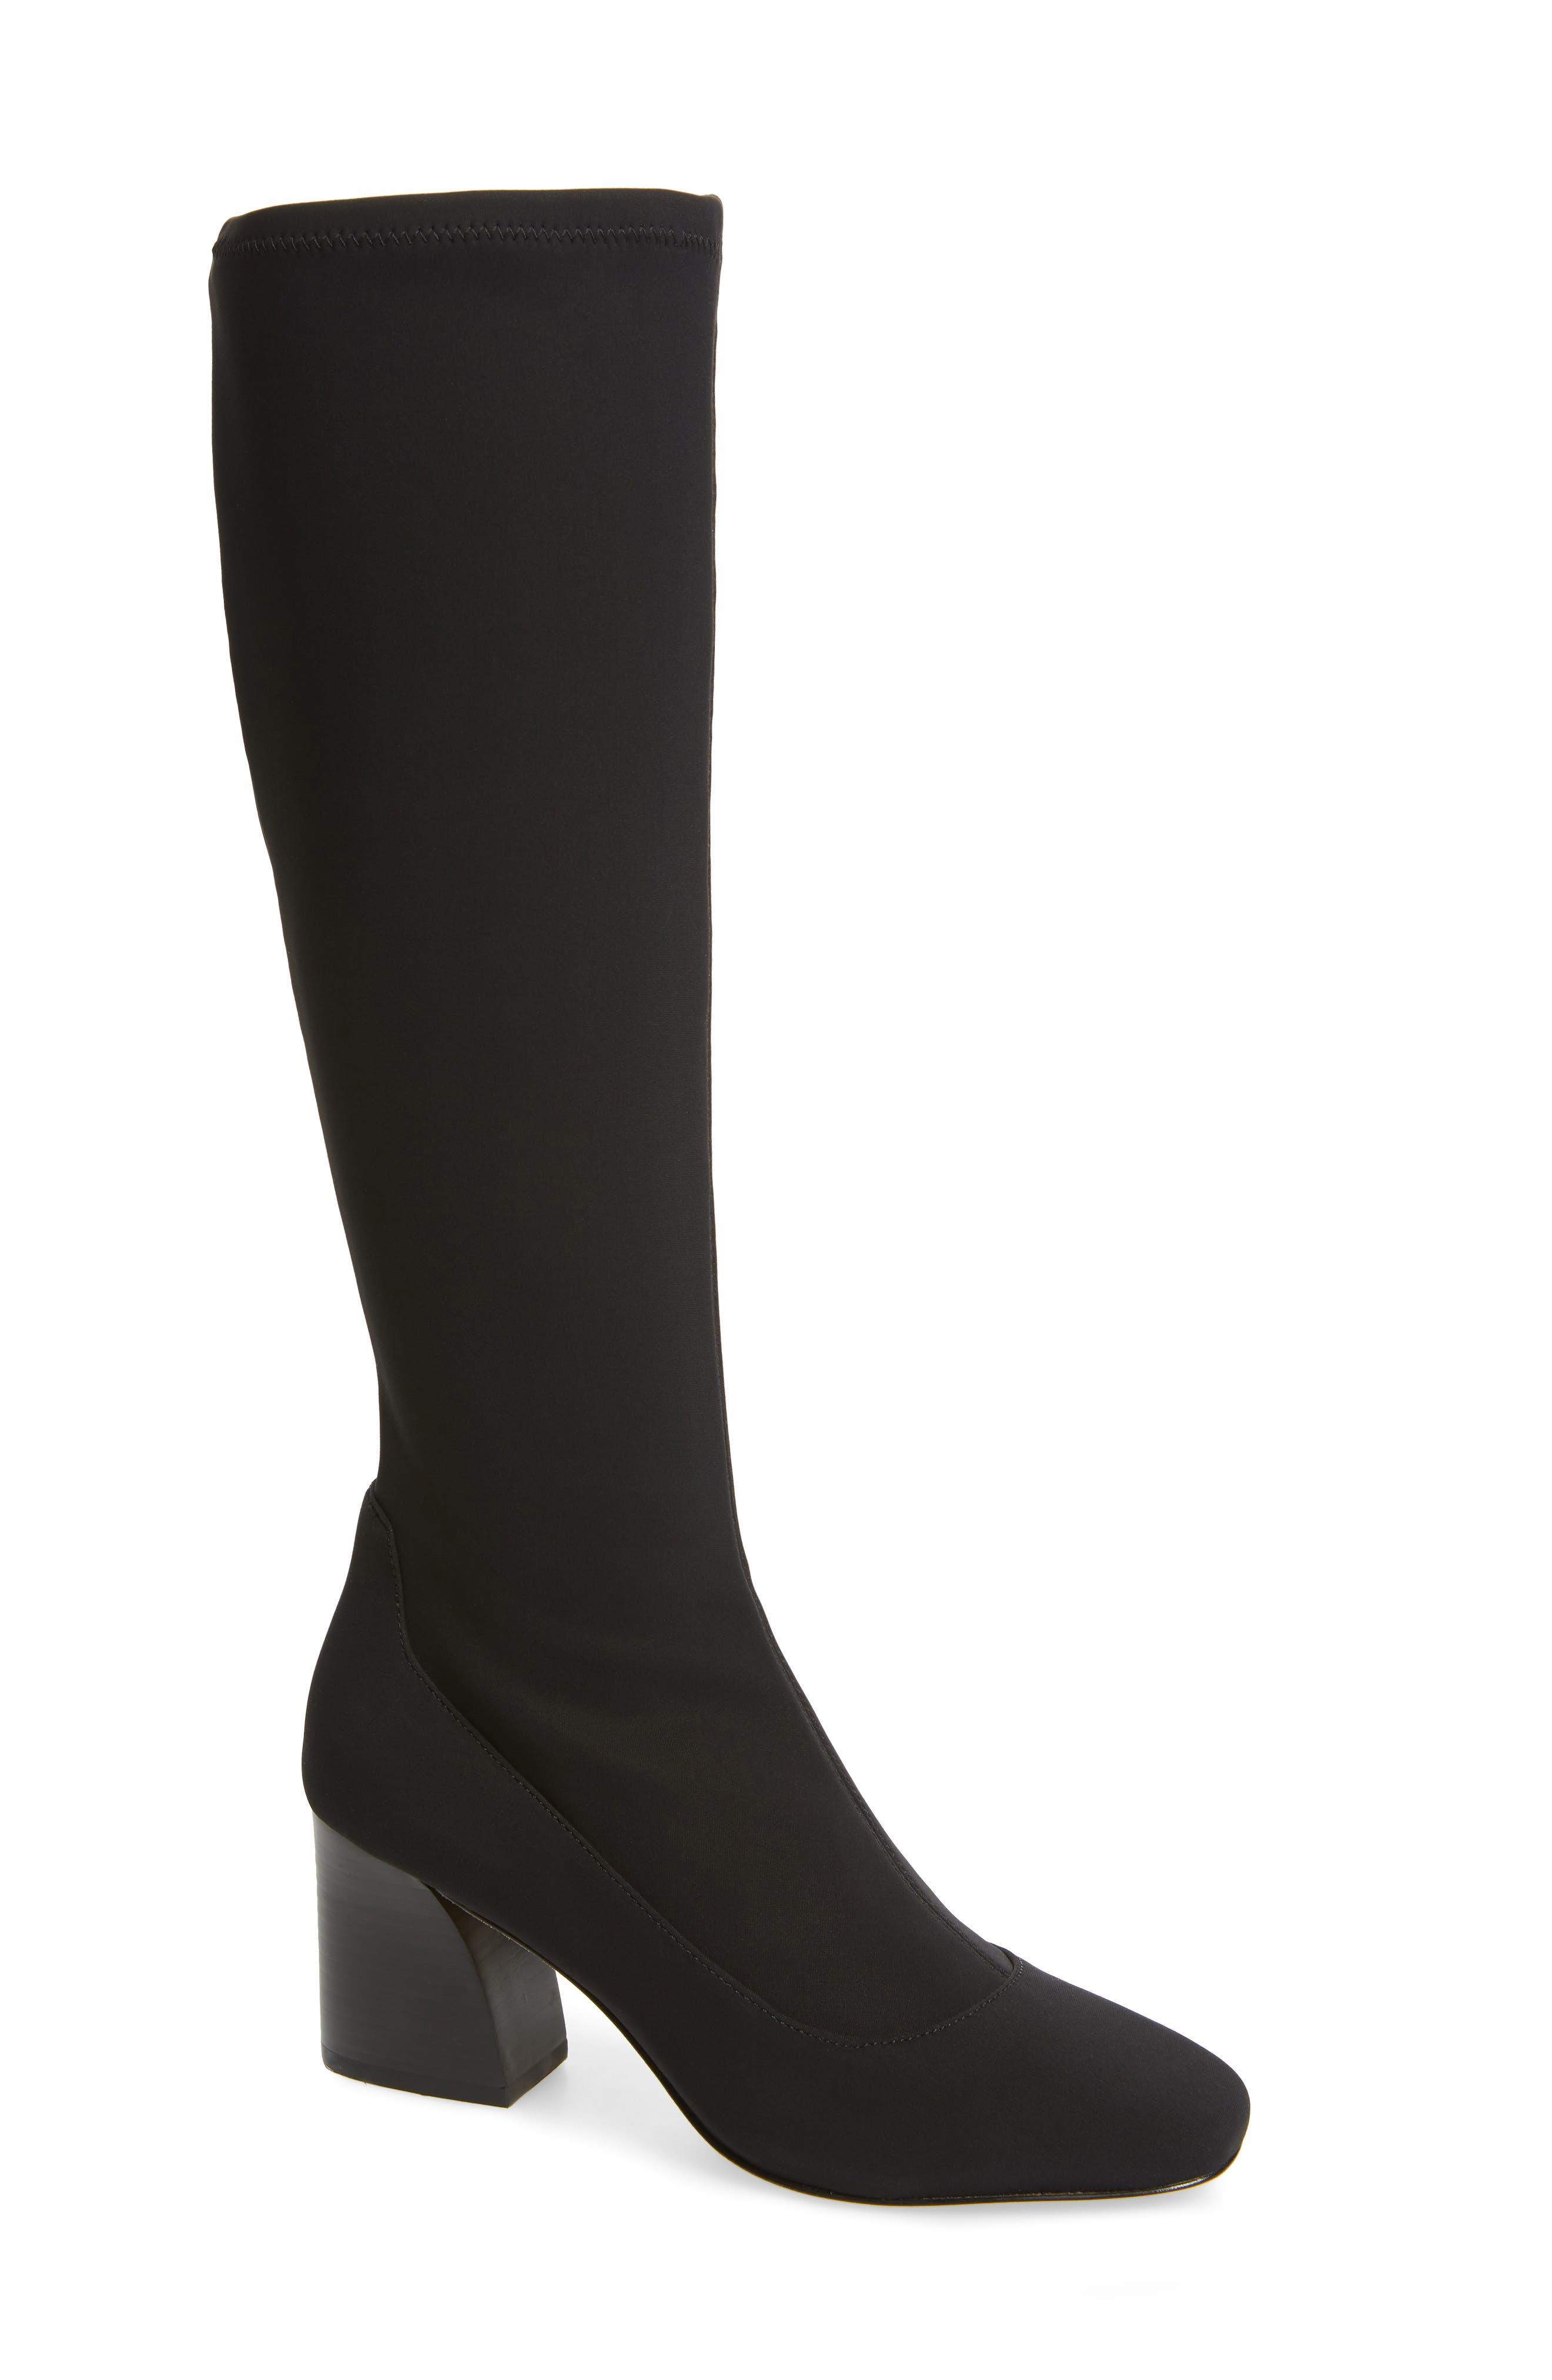 DONALD PLINER Gerti Knee High Stretch Boot, Main, color, 001